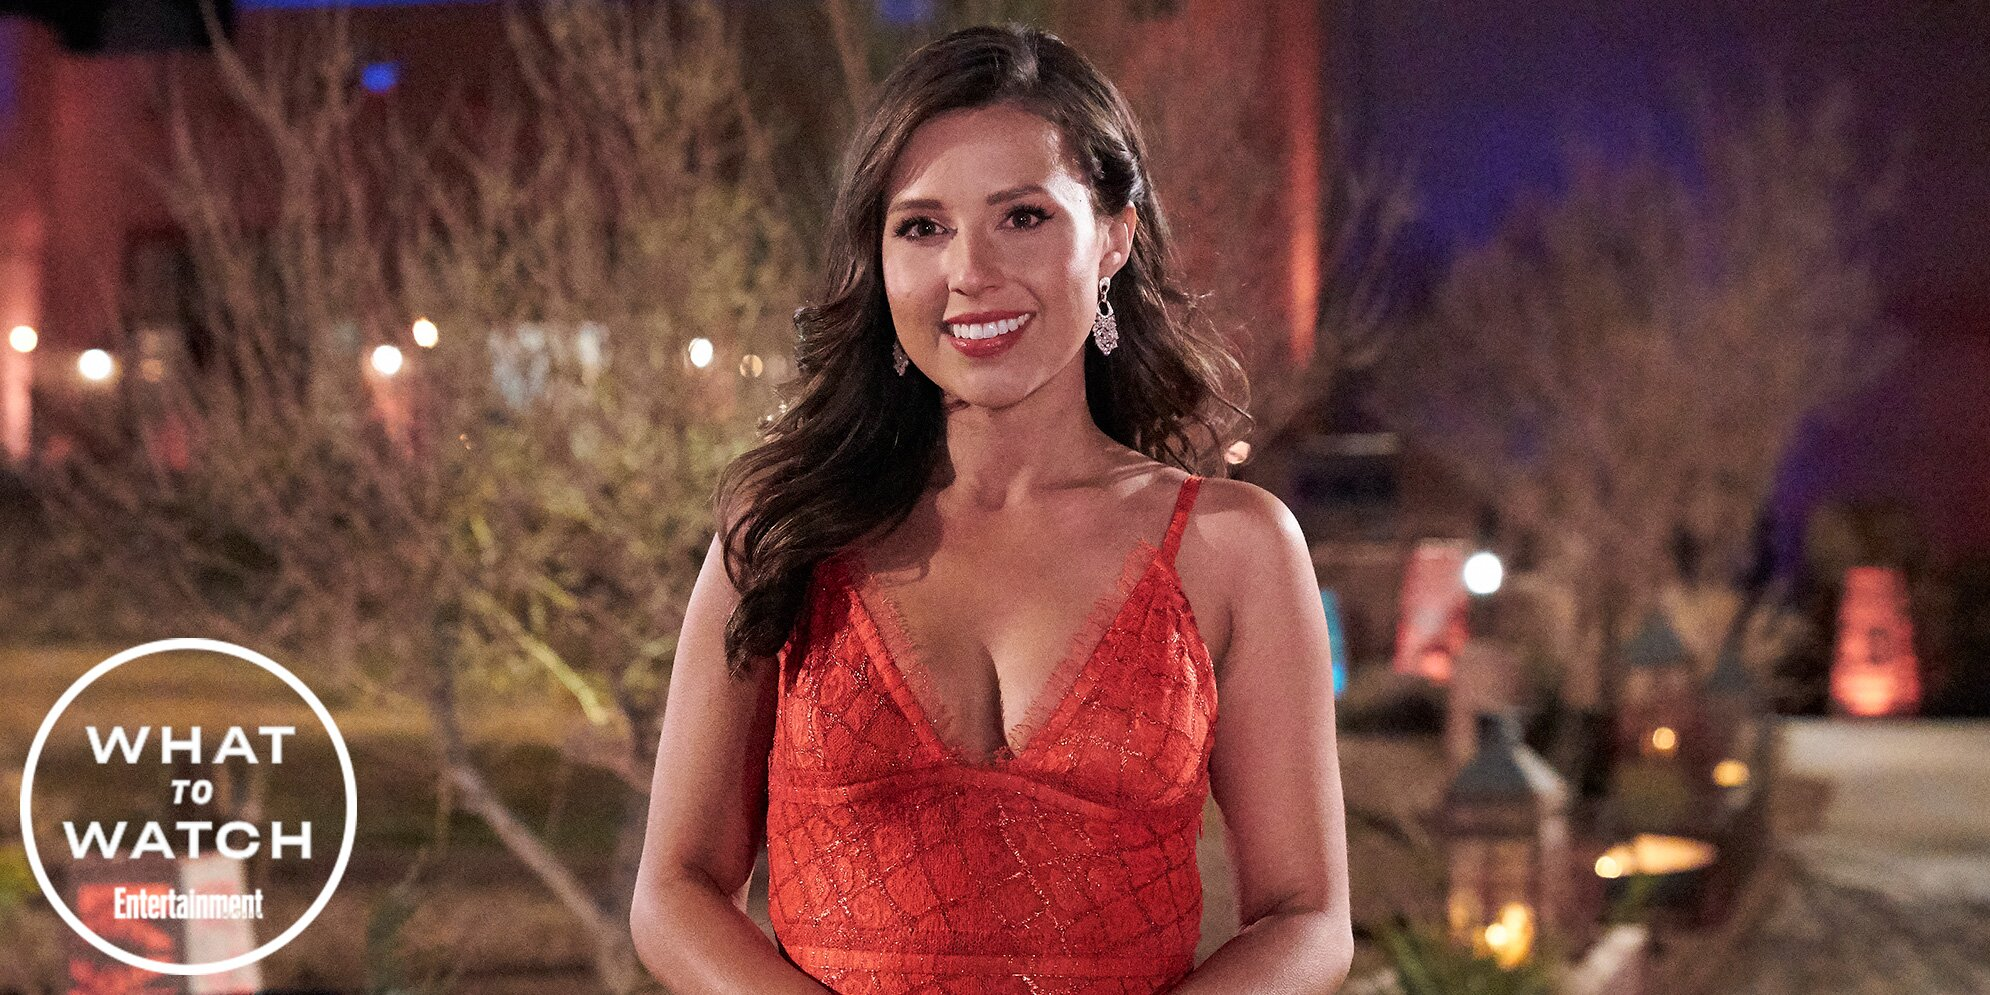 What to Watch on Monday: Katie Thurston's 'Bachelorette' journey begins